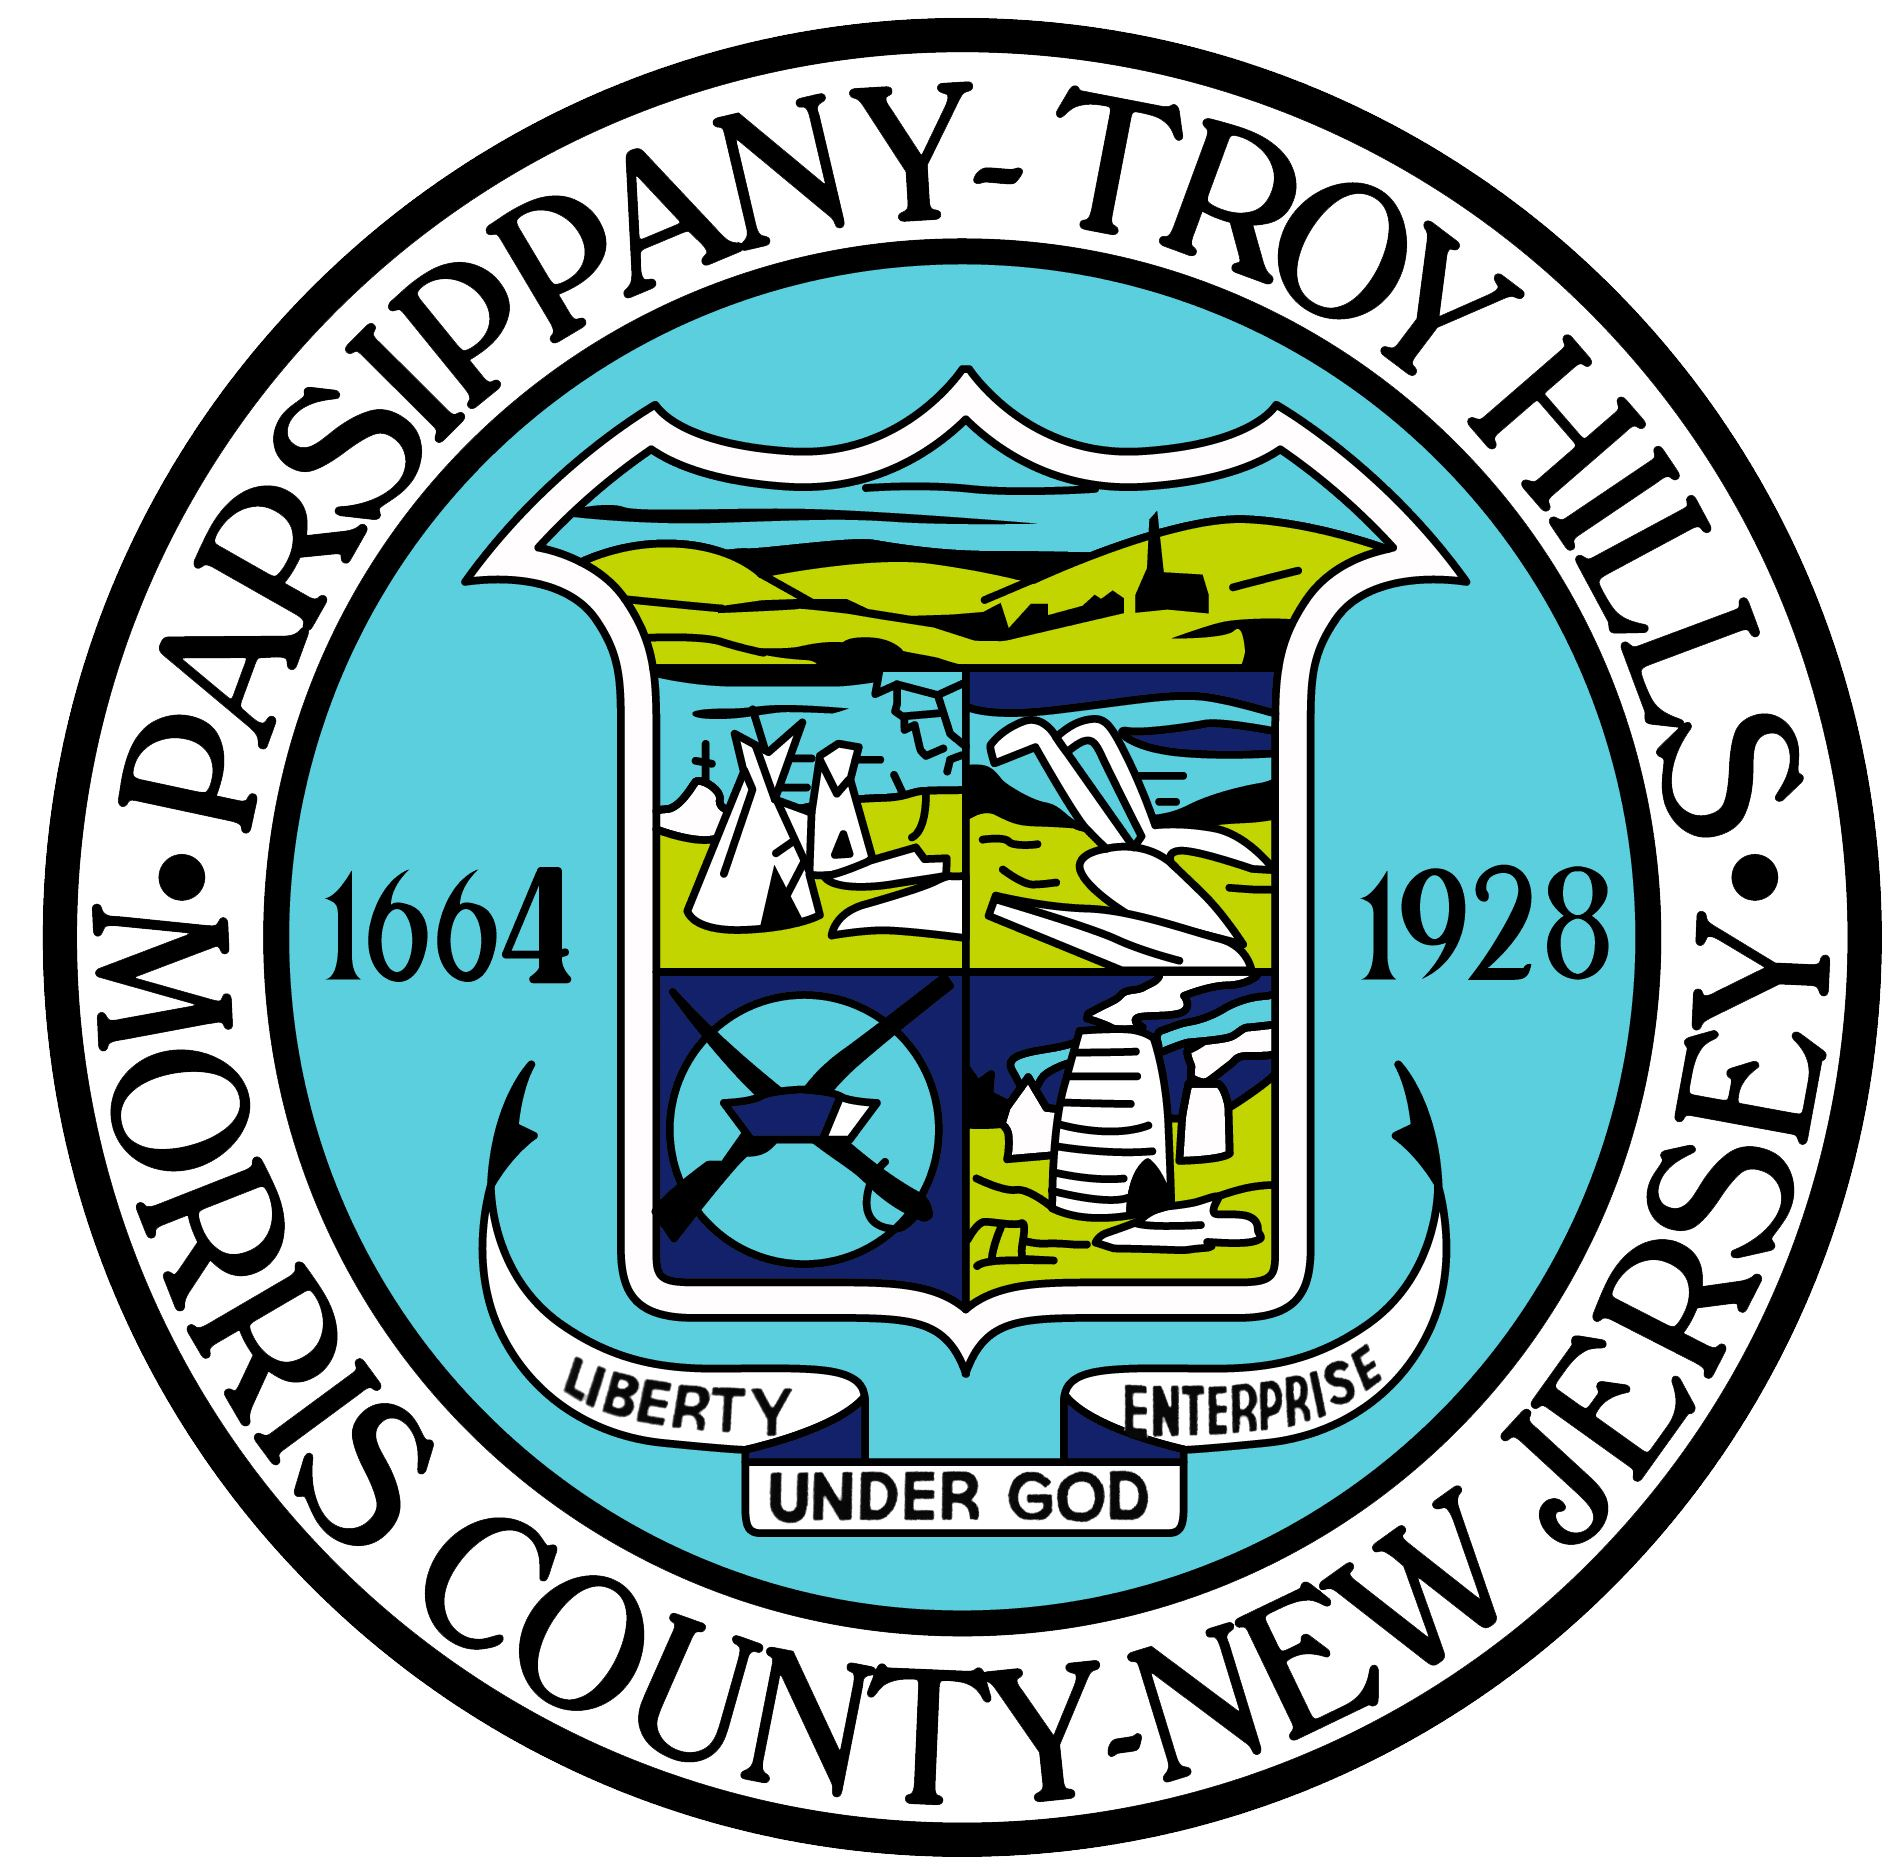 Parsippany-Troy Hills, NJ | Official Website